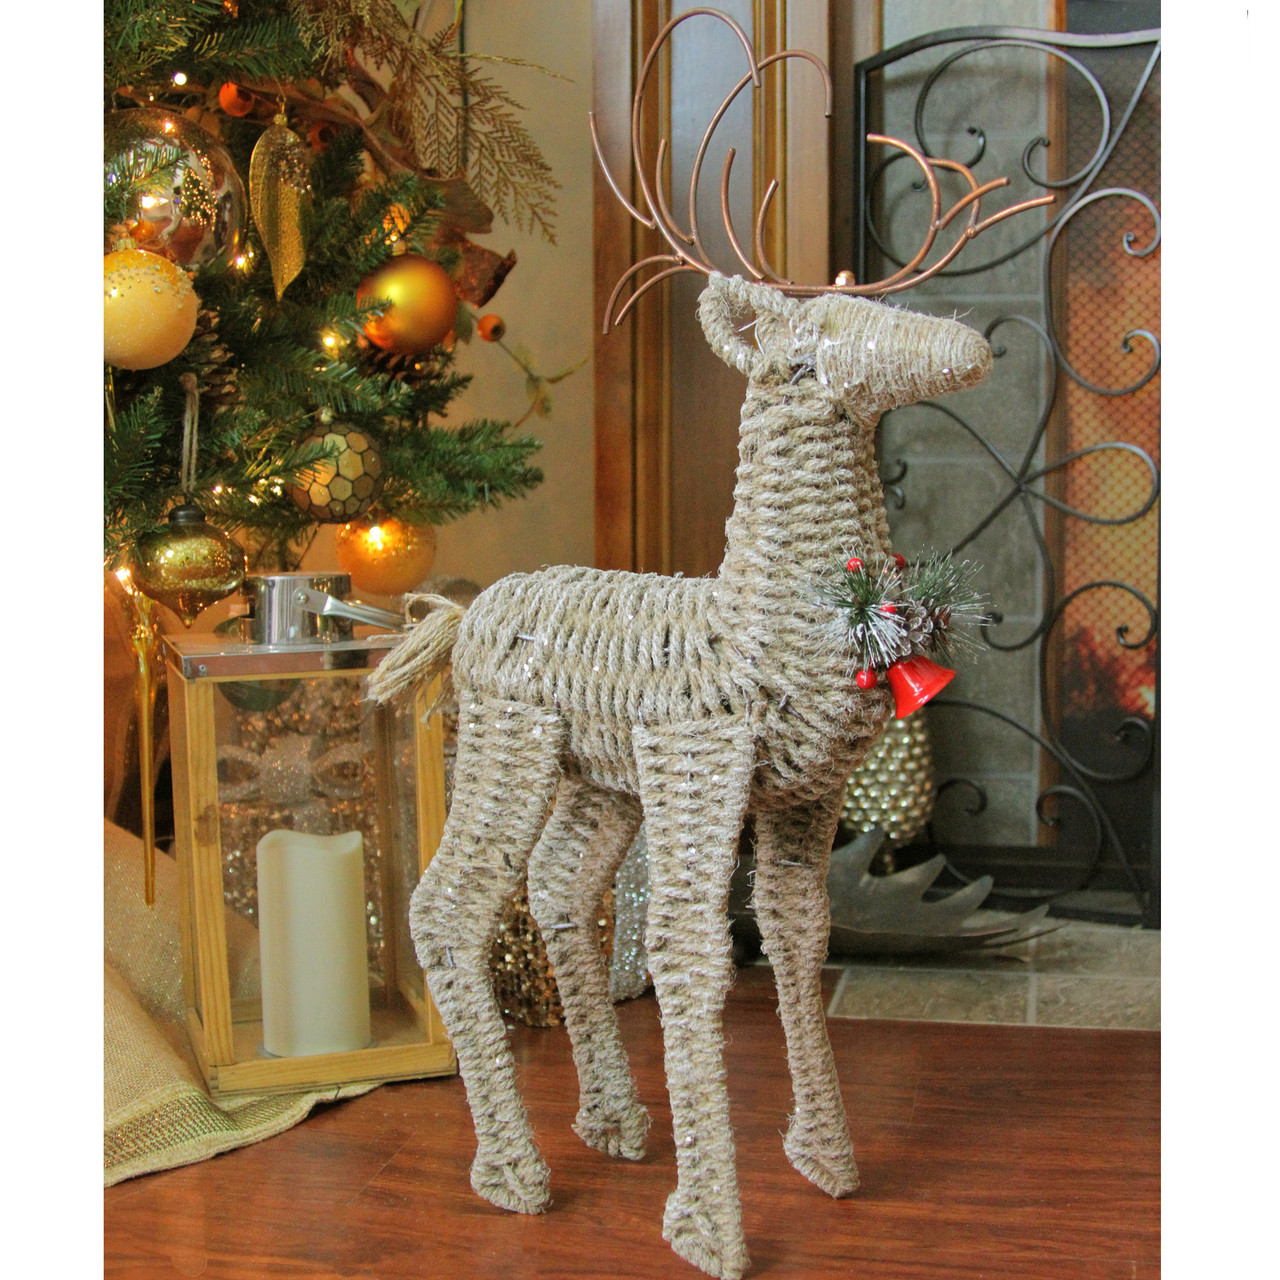 26 reindeer twine and metal christmas decoration 32629098 - Metal Reindeer Christmas Decorations